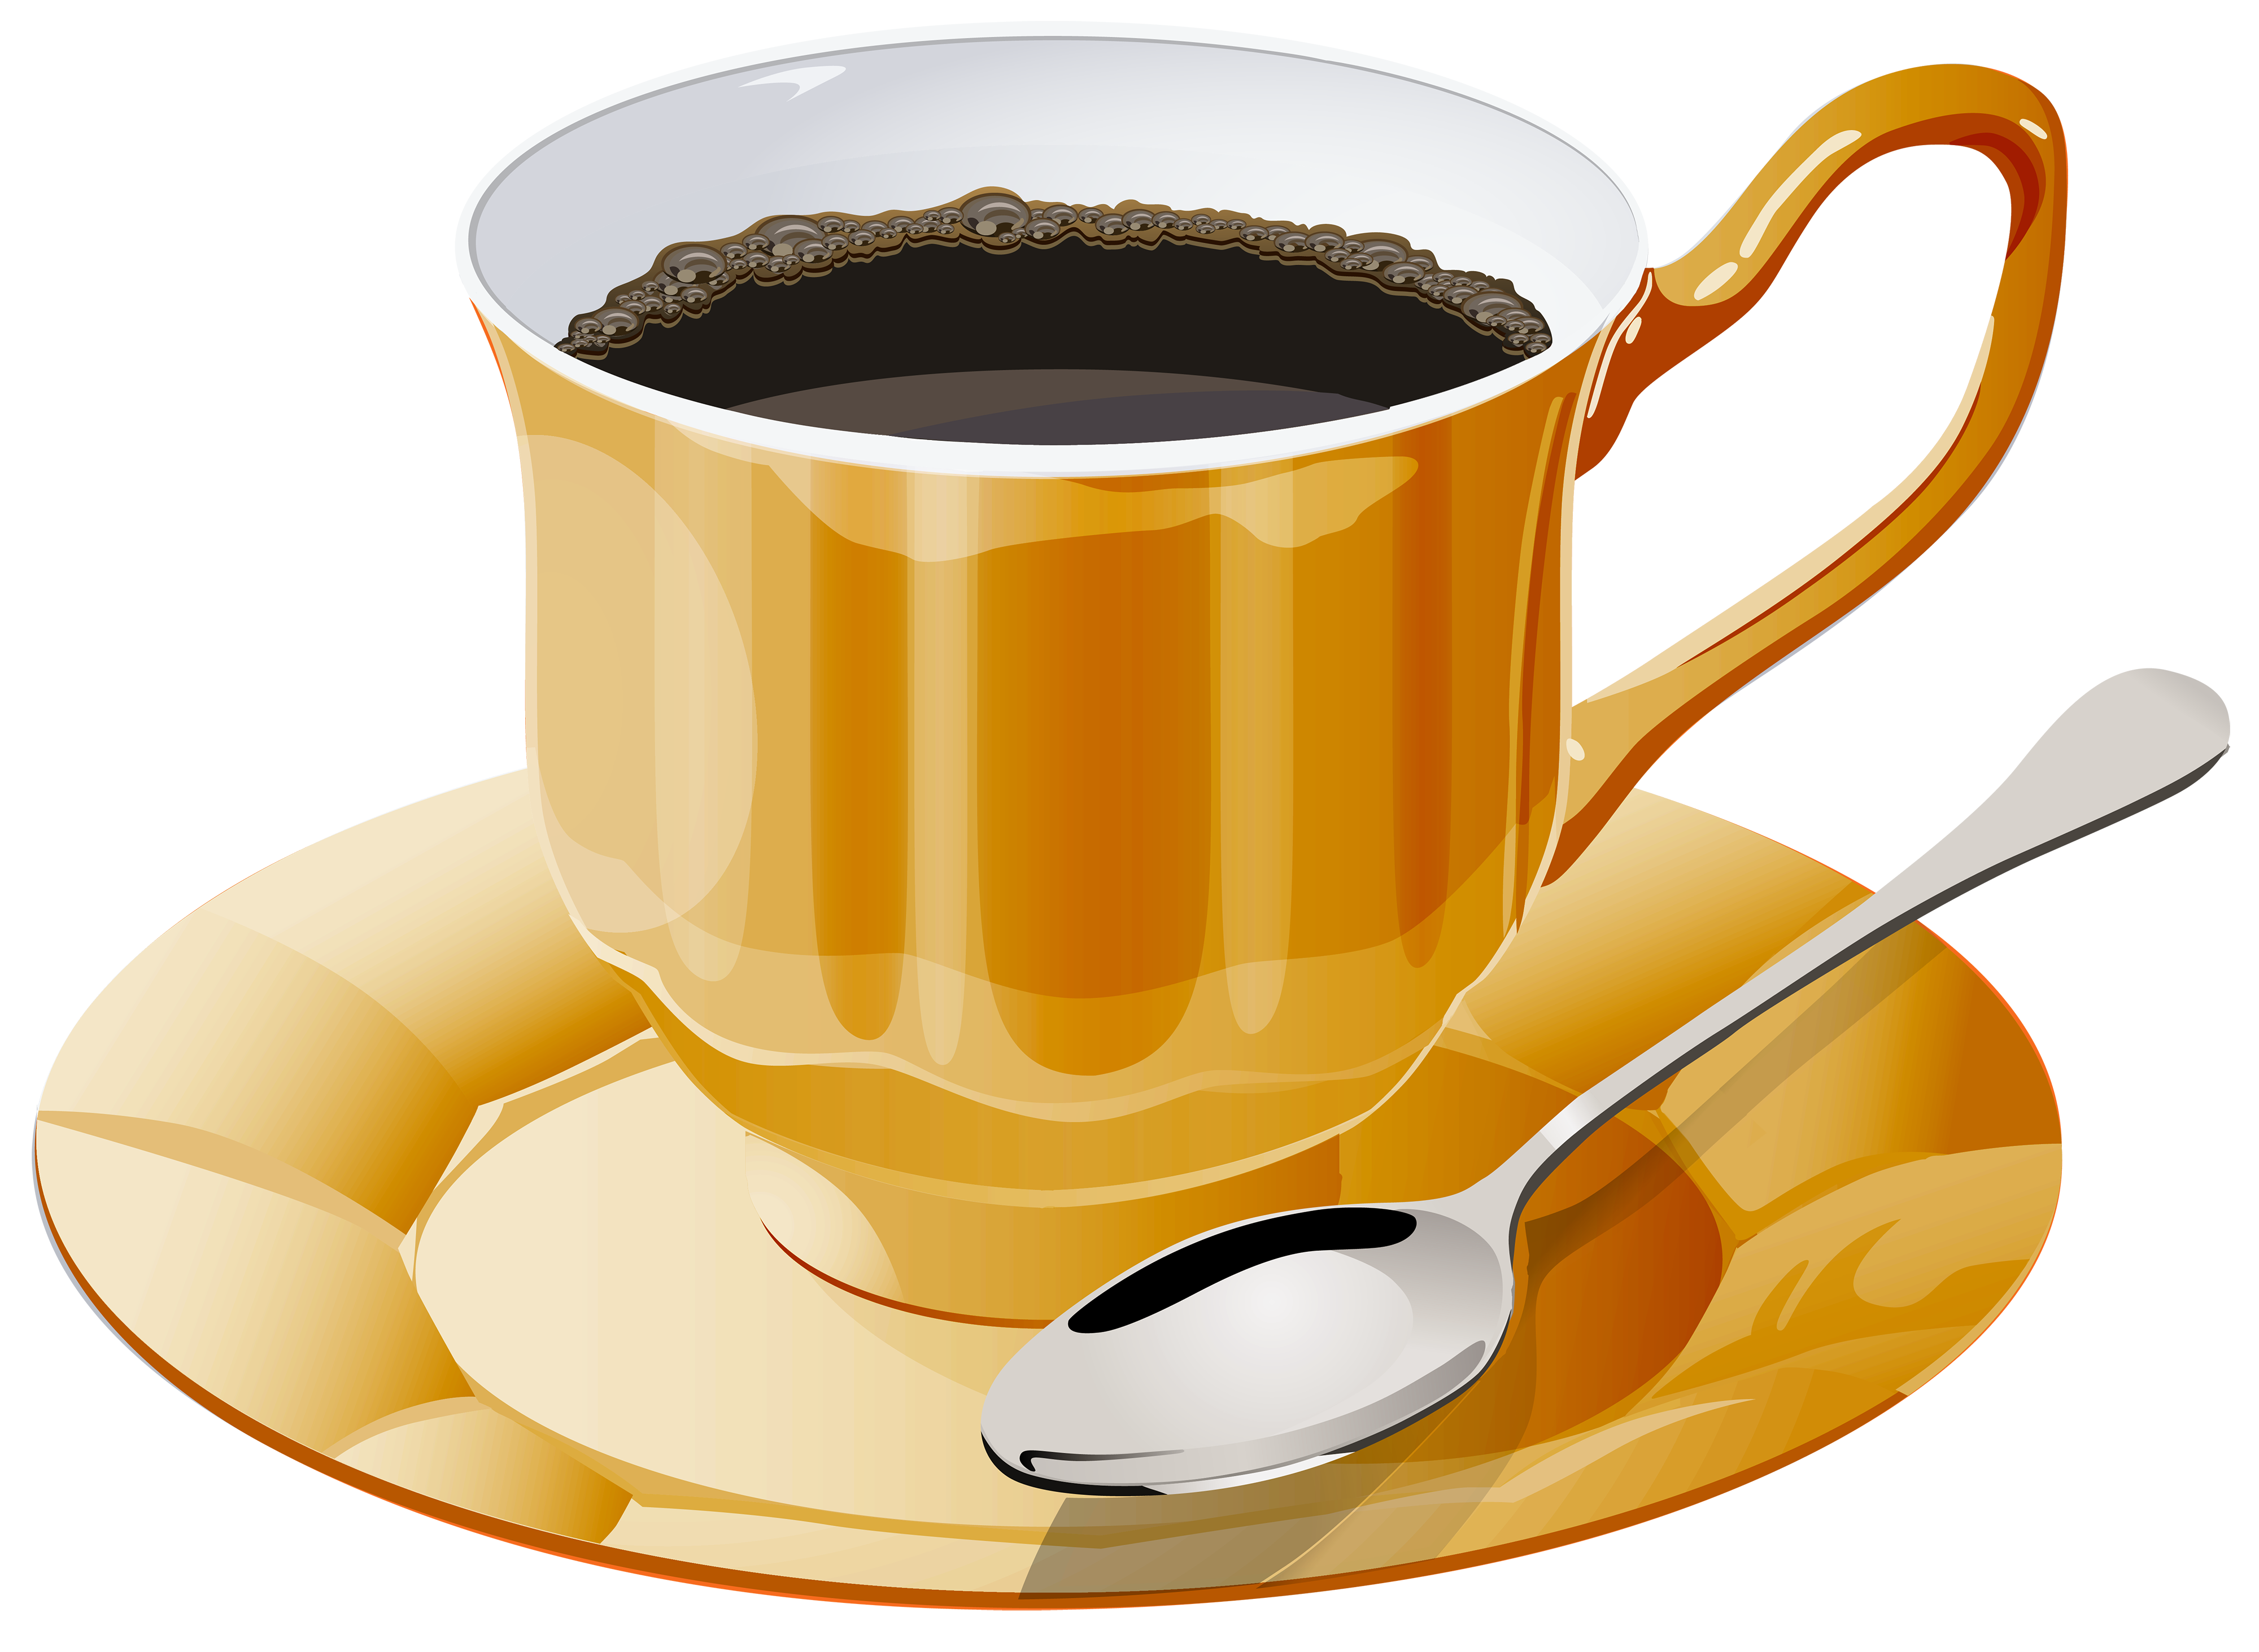 clipart download Pretty transparent png clip. Cute coffee cup clipart